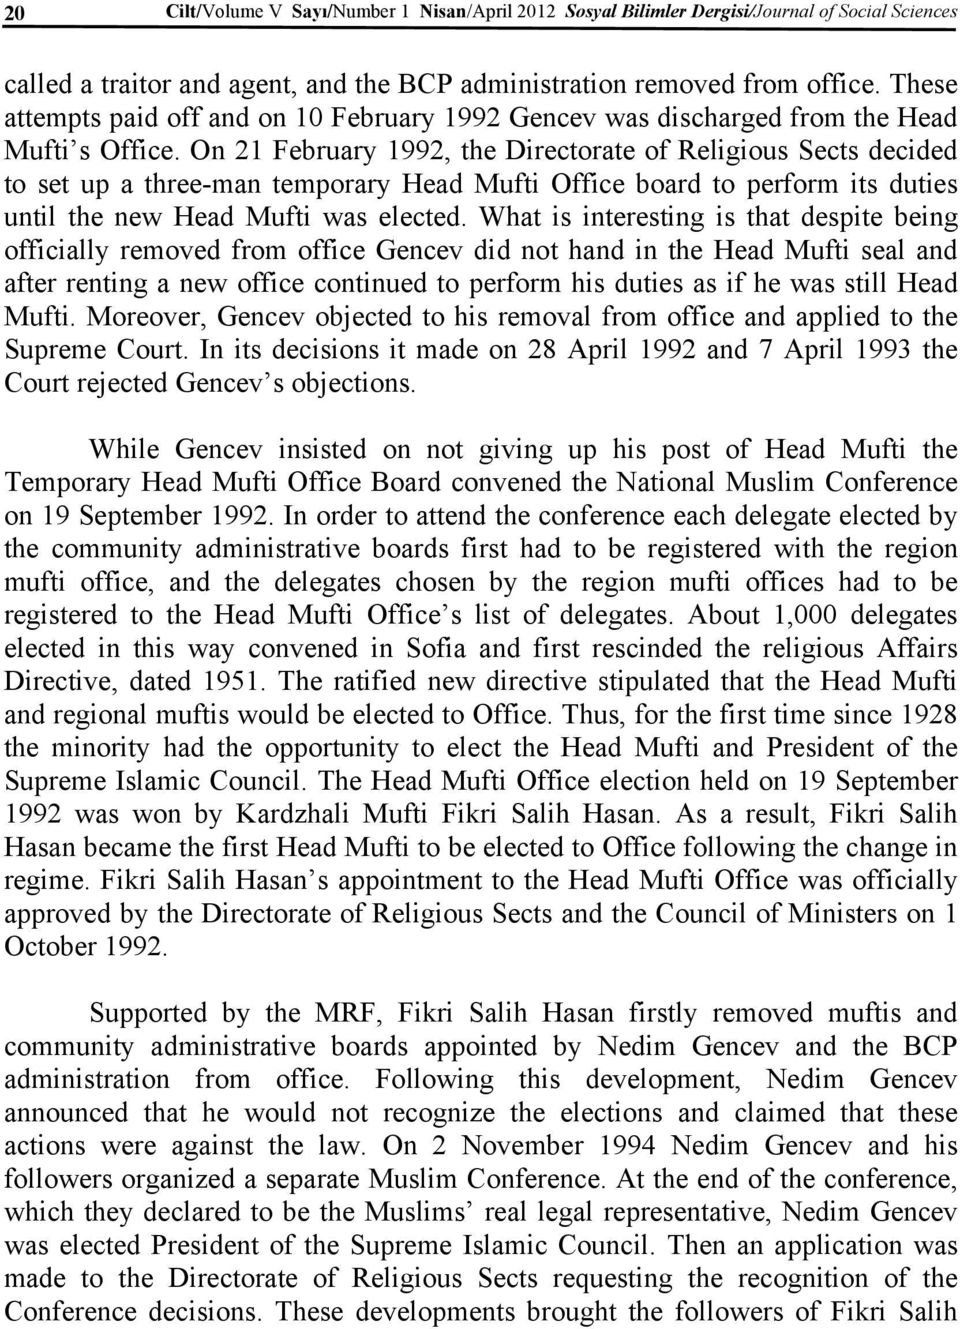 On 21 February 1992, the Directorate of Religious Sects decided to set up a three-man temporary Head Mufti Office board to perform its duties until the new Head Mufti was elected.